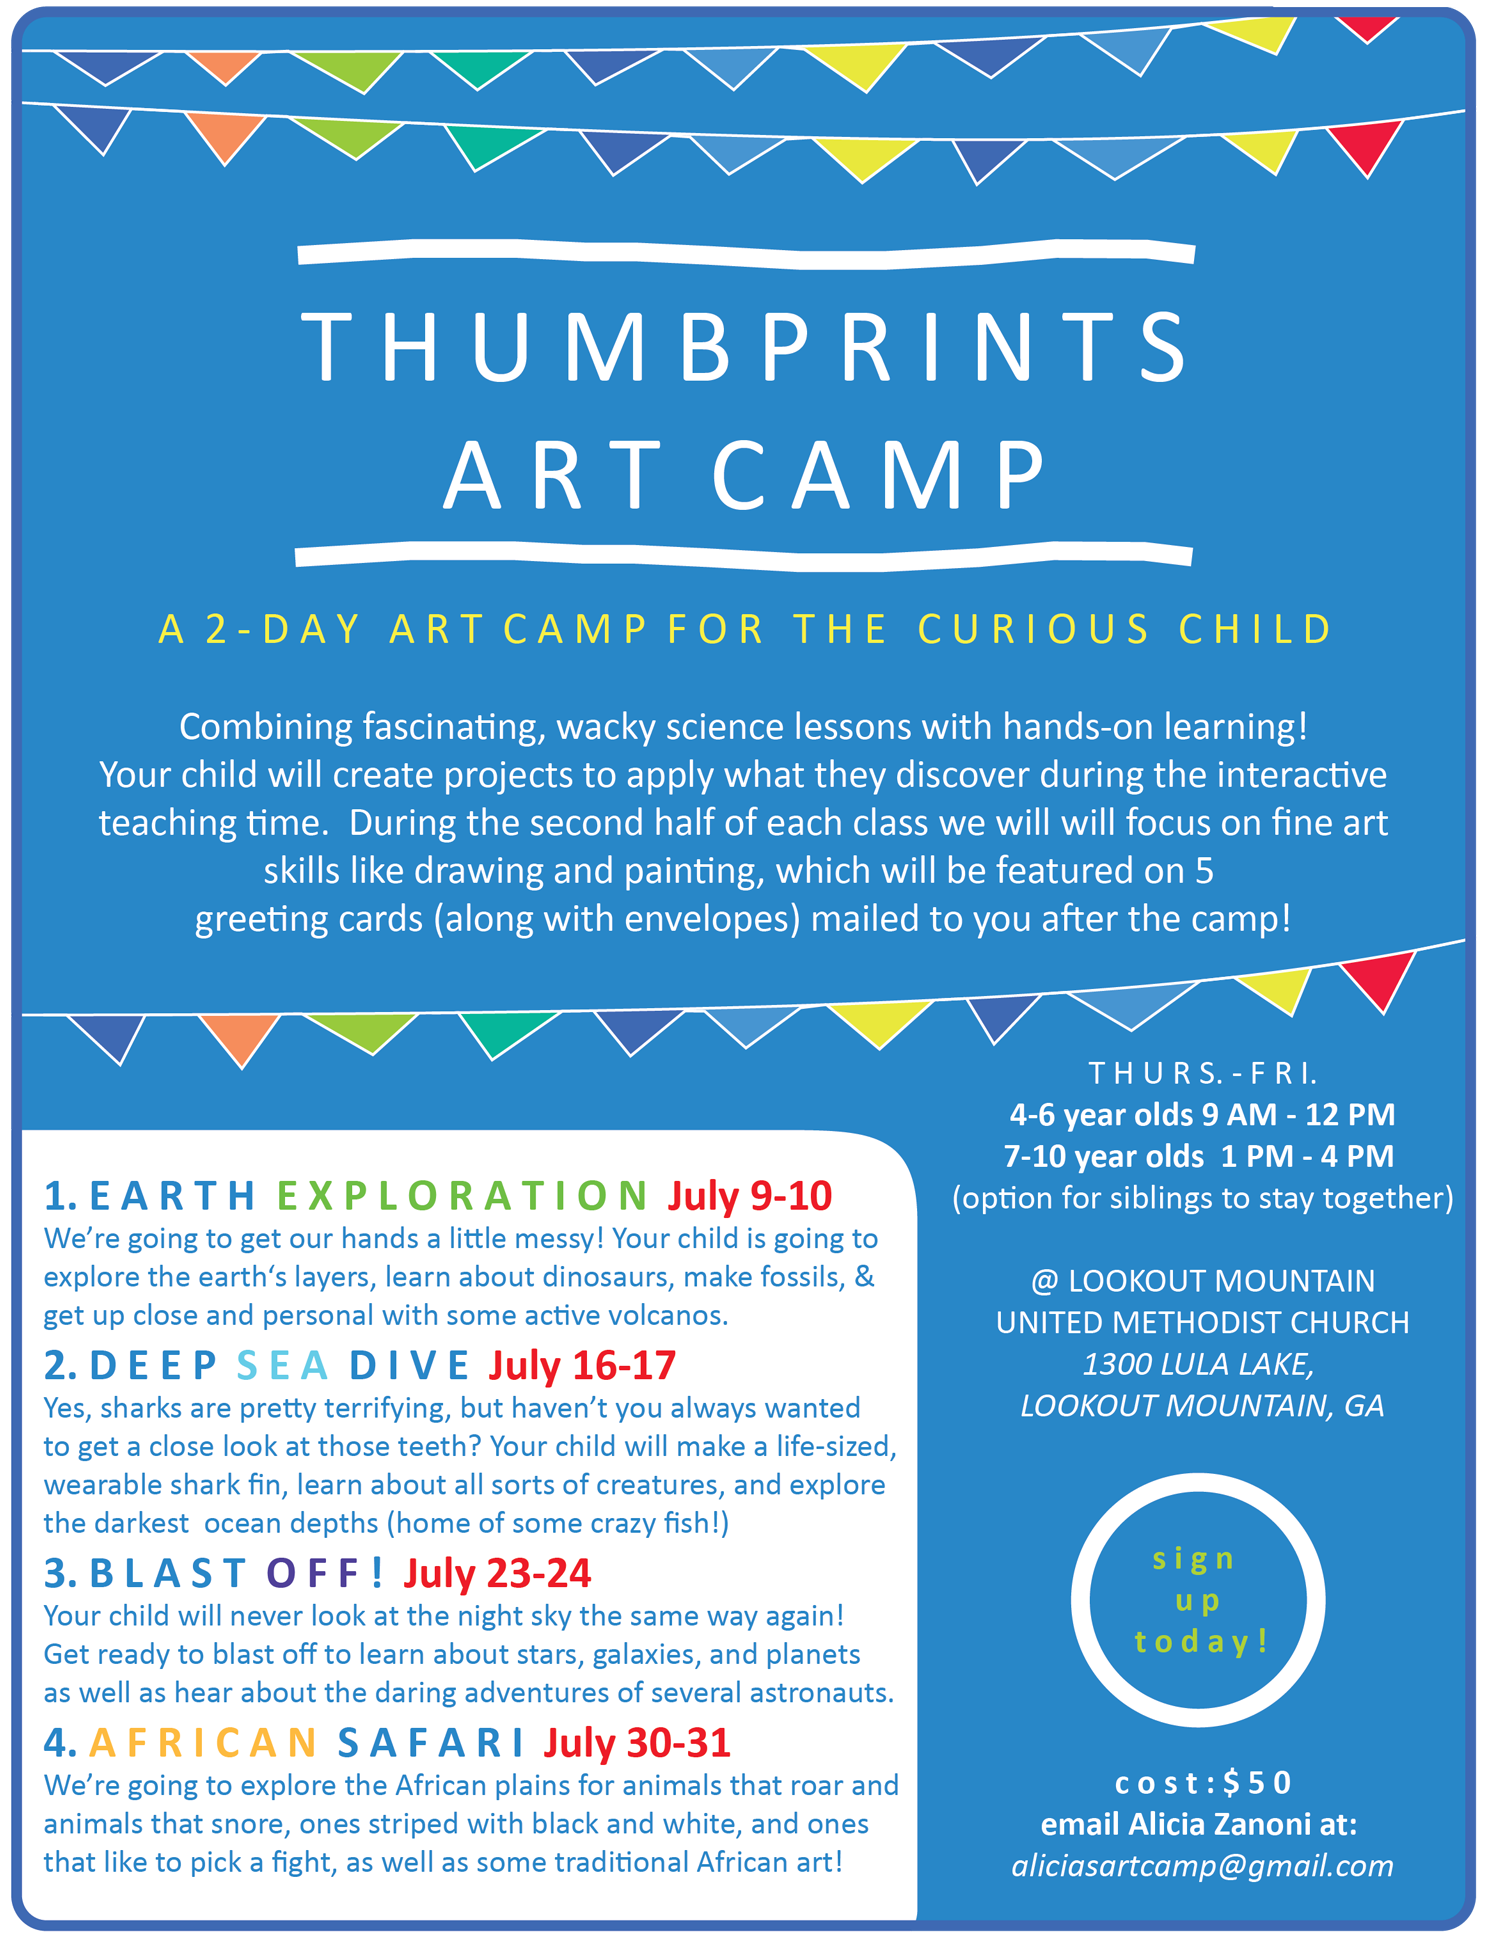 Thumbprints Art Camp, July 2015. Created with Adobe Illustrator.